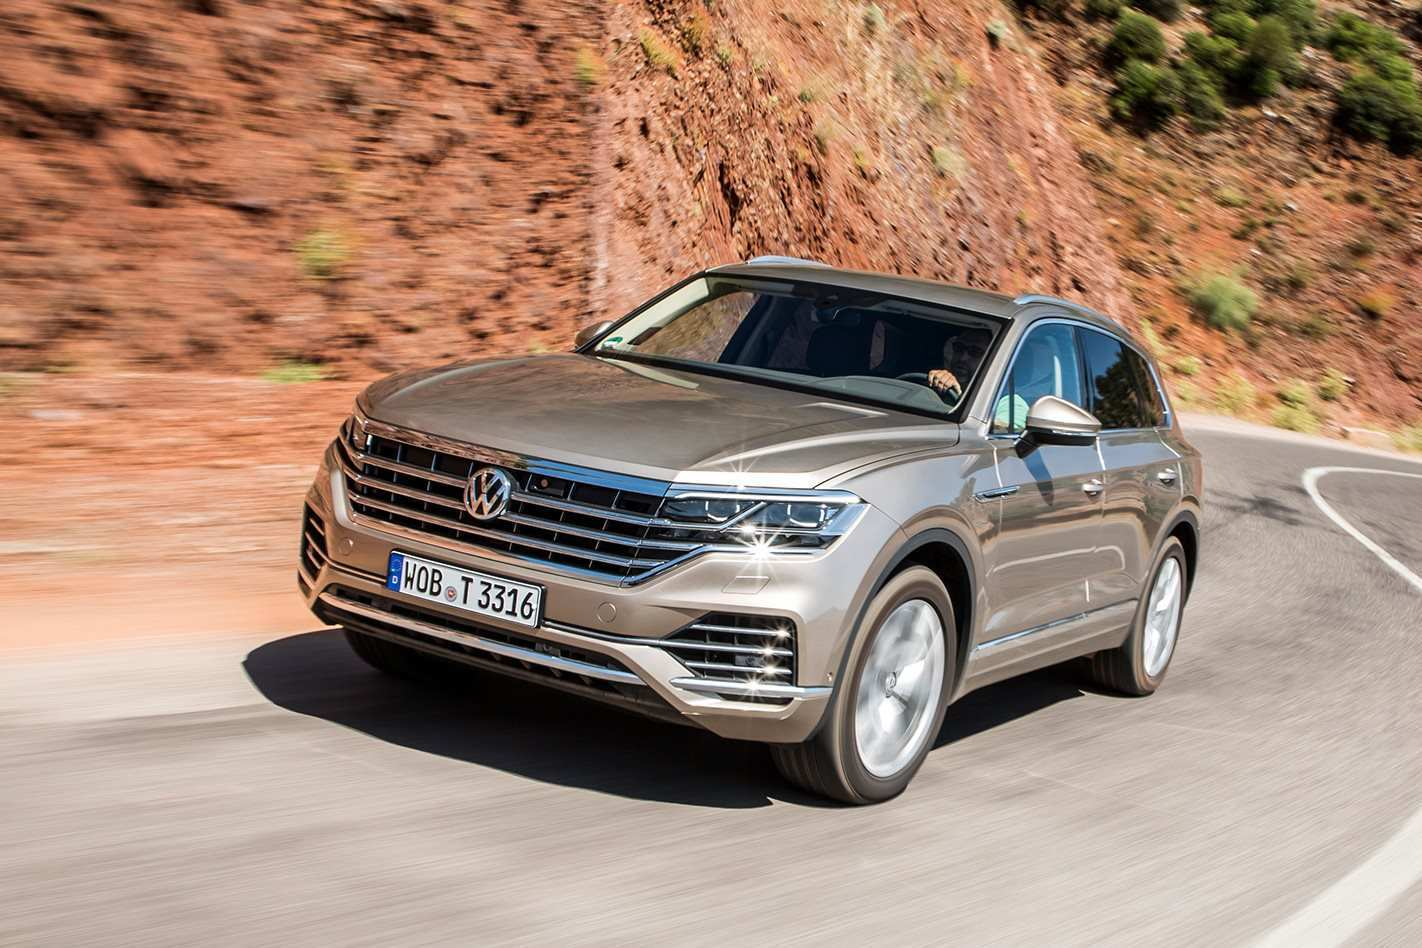 96 Concept of Volkswagen Touareg 2019 Off Road Specs Exterior and Interior by Volkswagen Touareg 2019 Off Road Specs